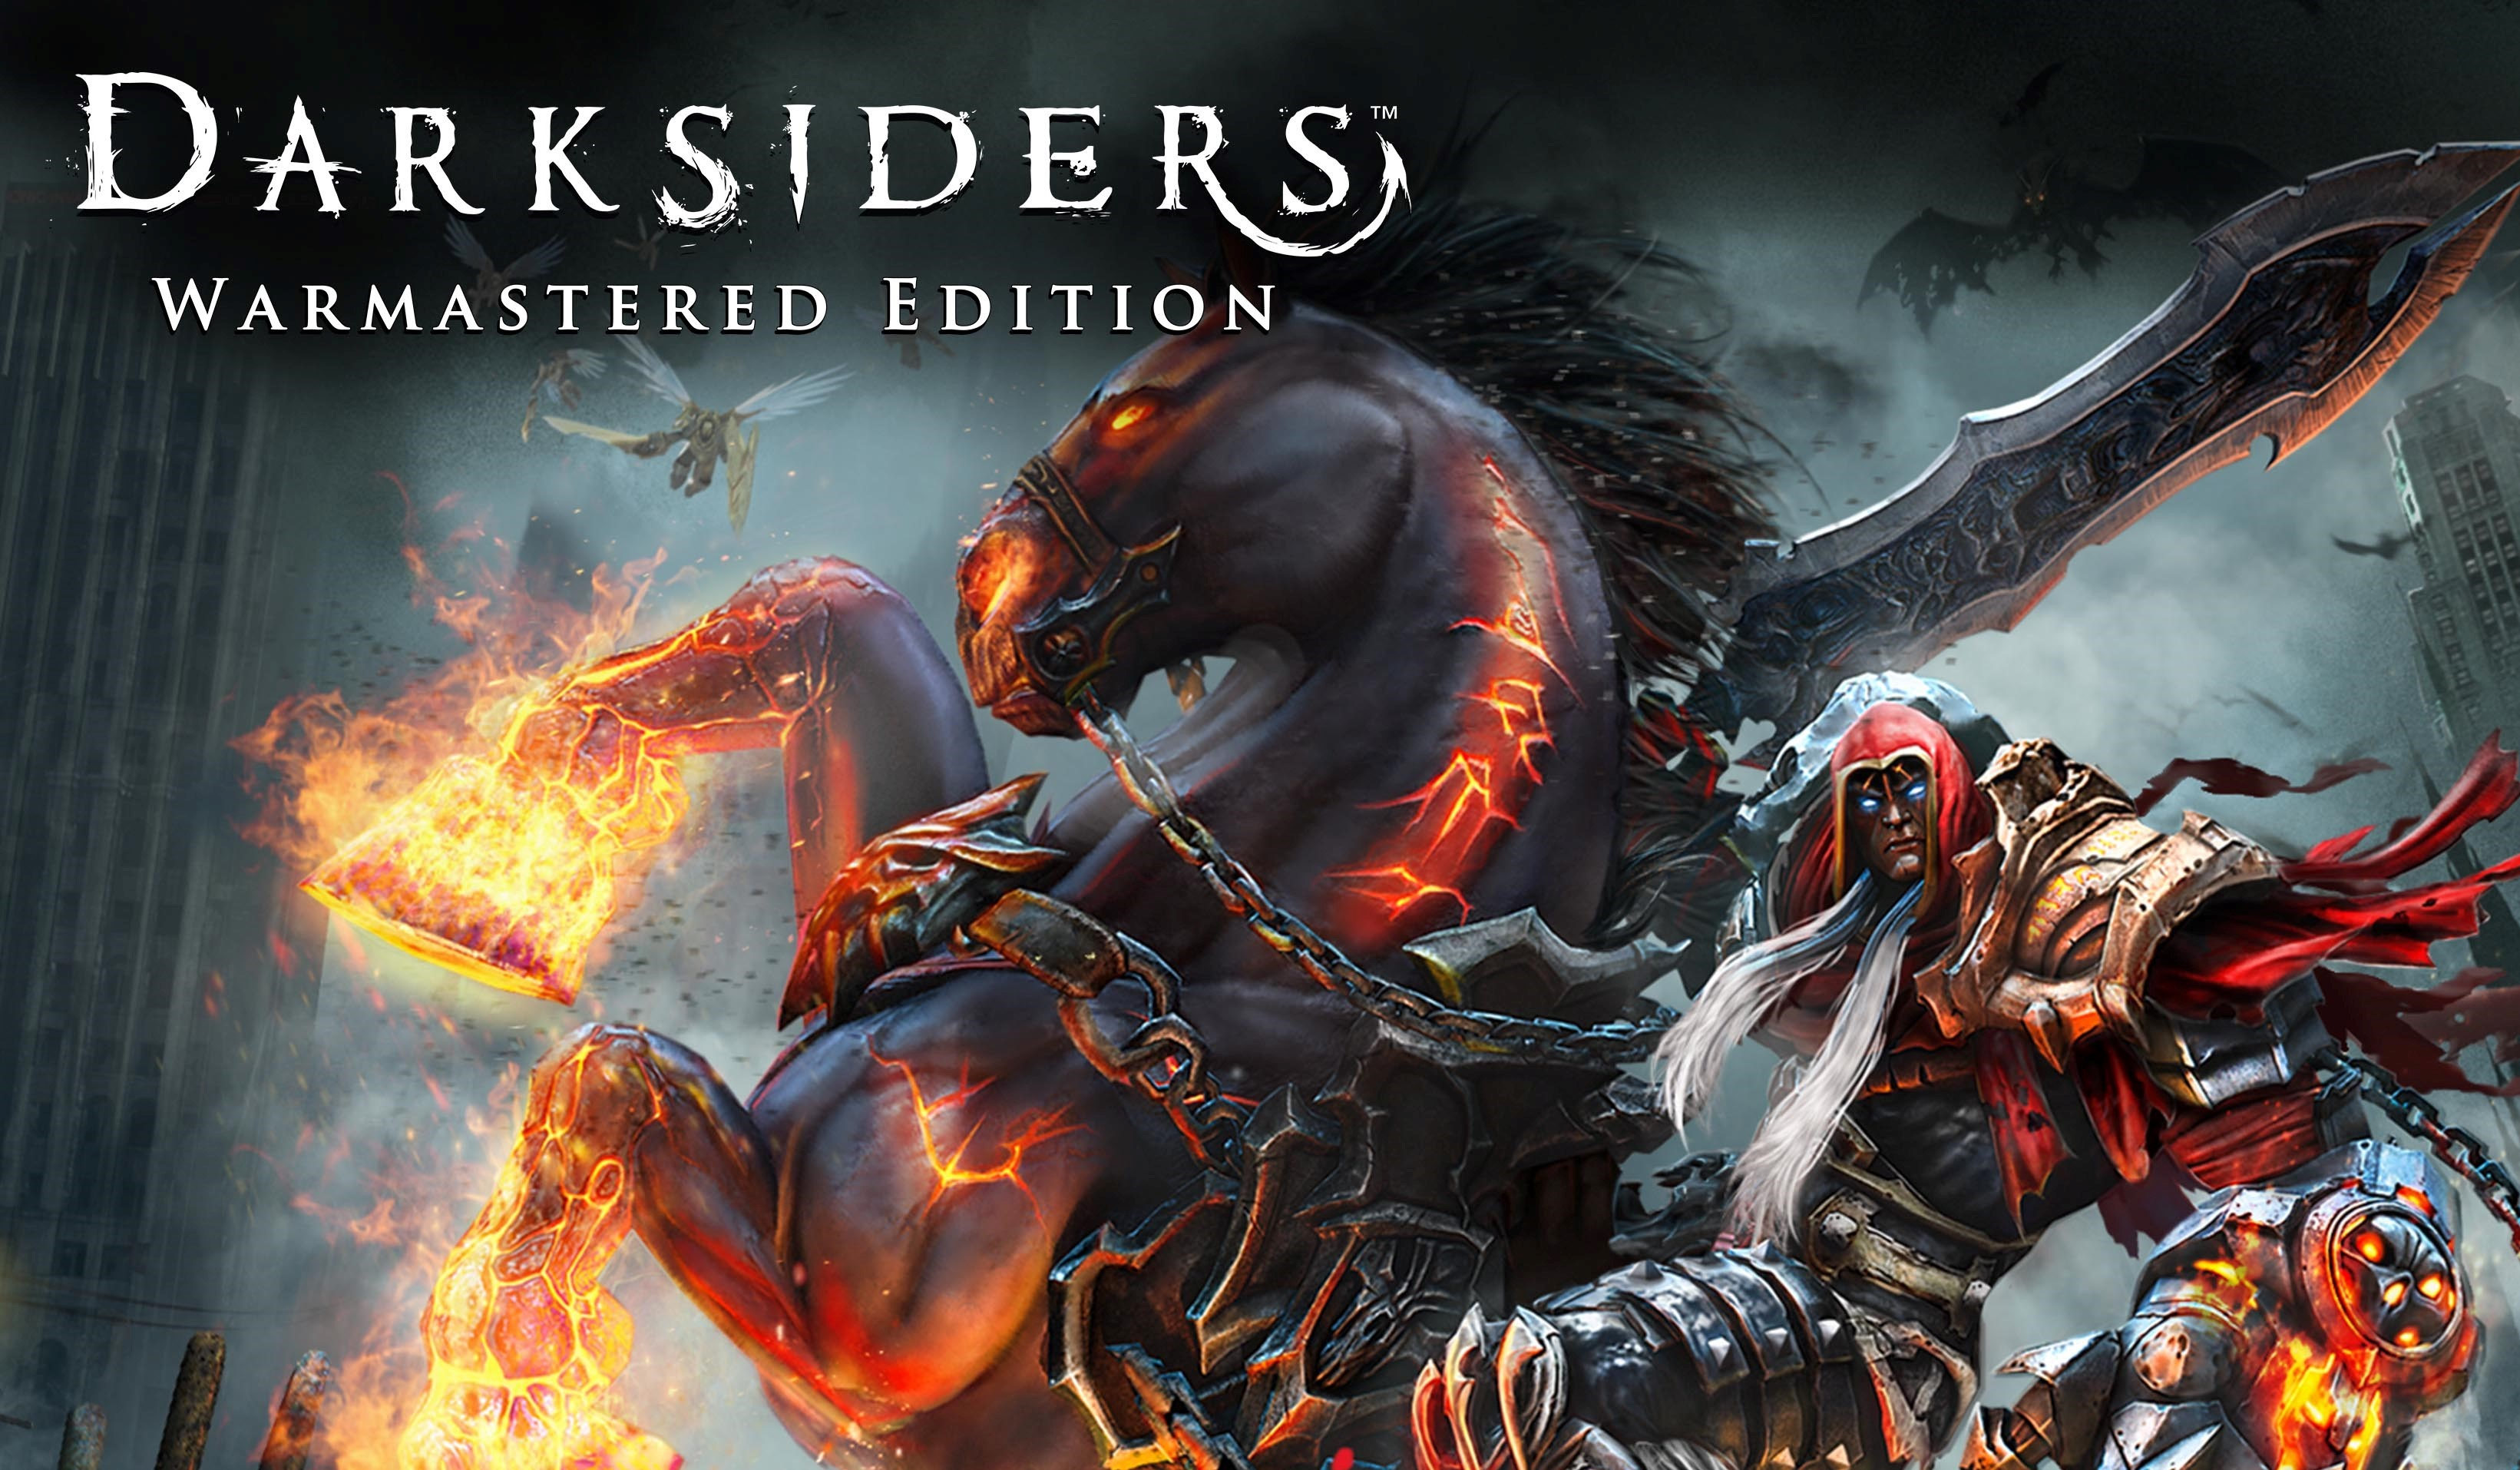 darksiders-warmastered-edition-08-01-16-1.jpg